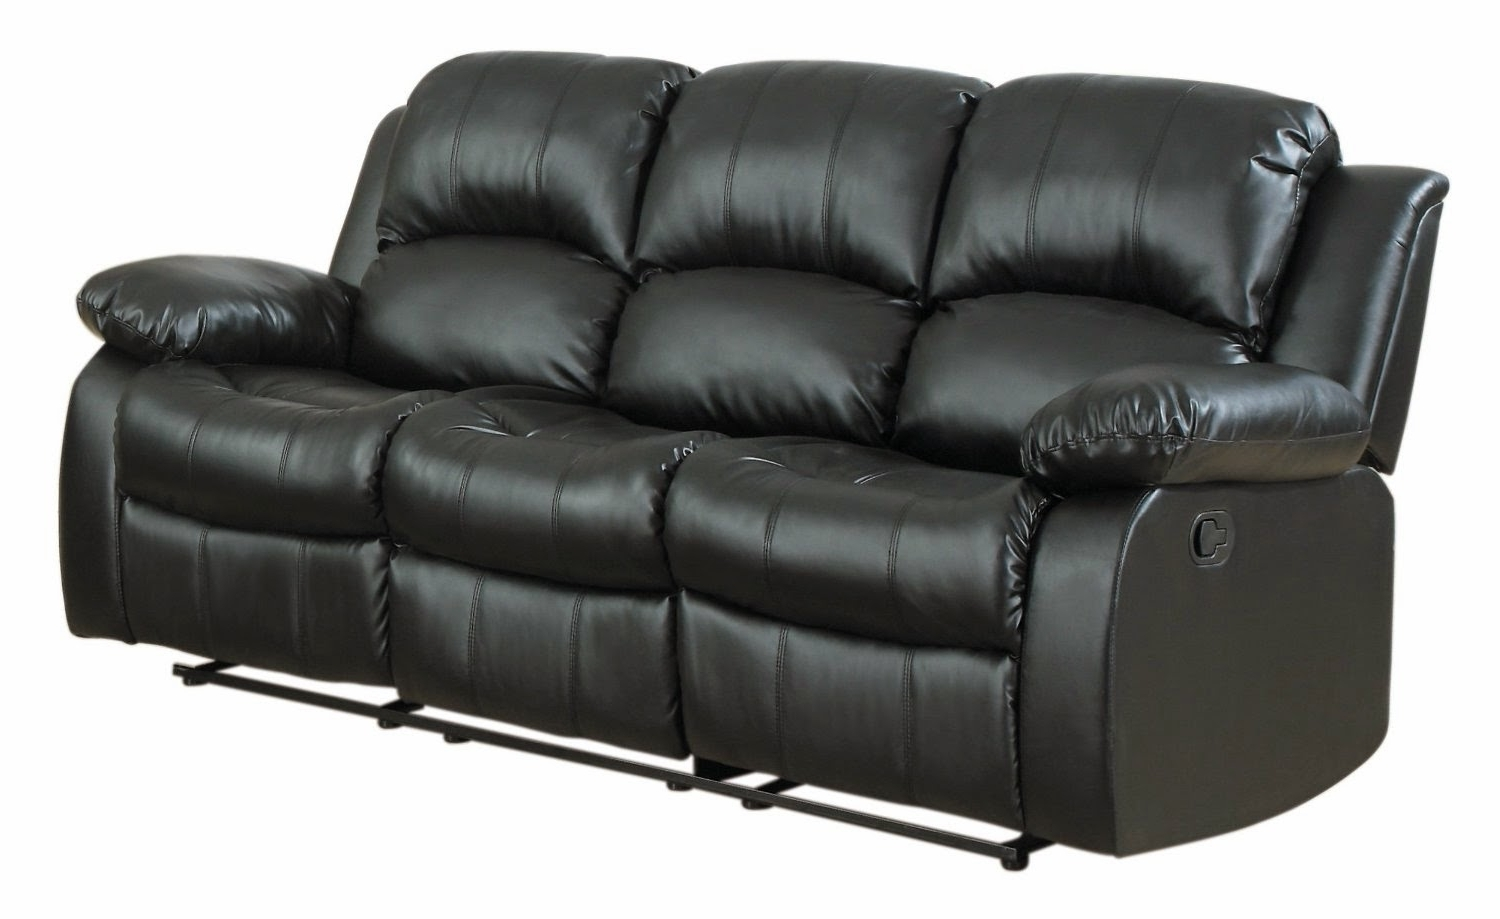 Berkline Sofas For 2019 Reclining Sofas For Sale: Berkline Leather Reclining Sofa Costco (View 4 of 20)